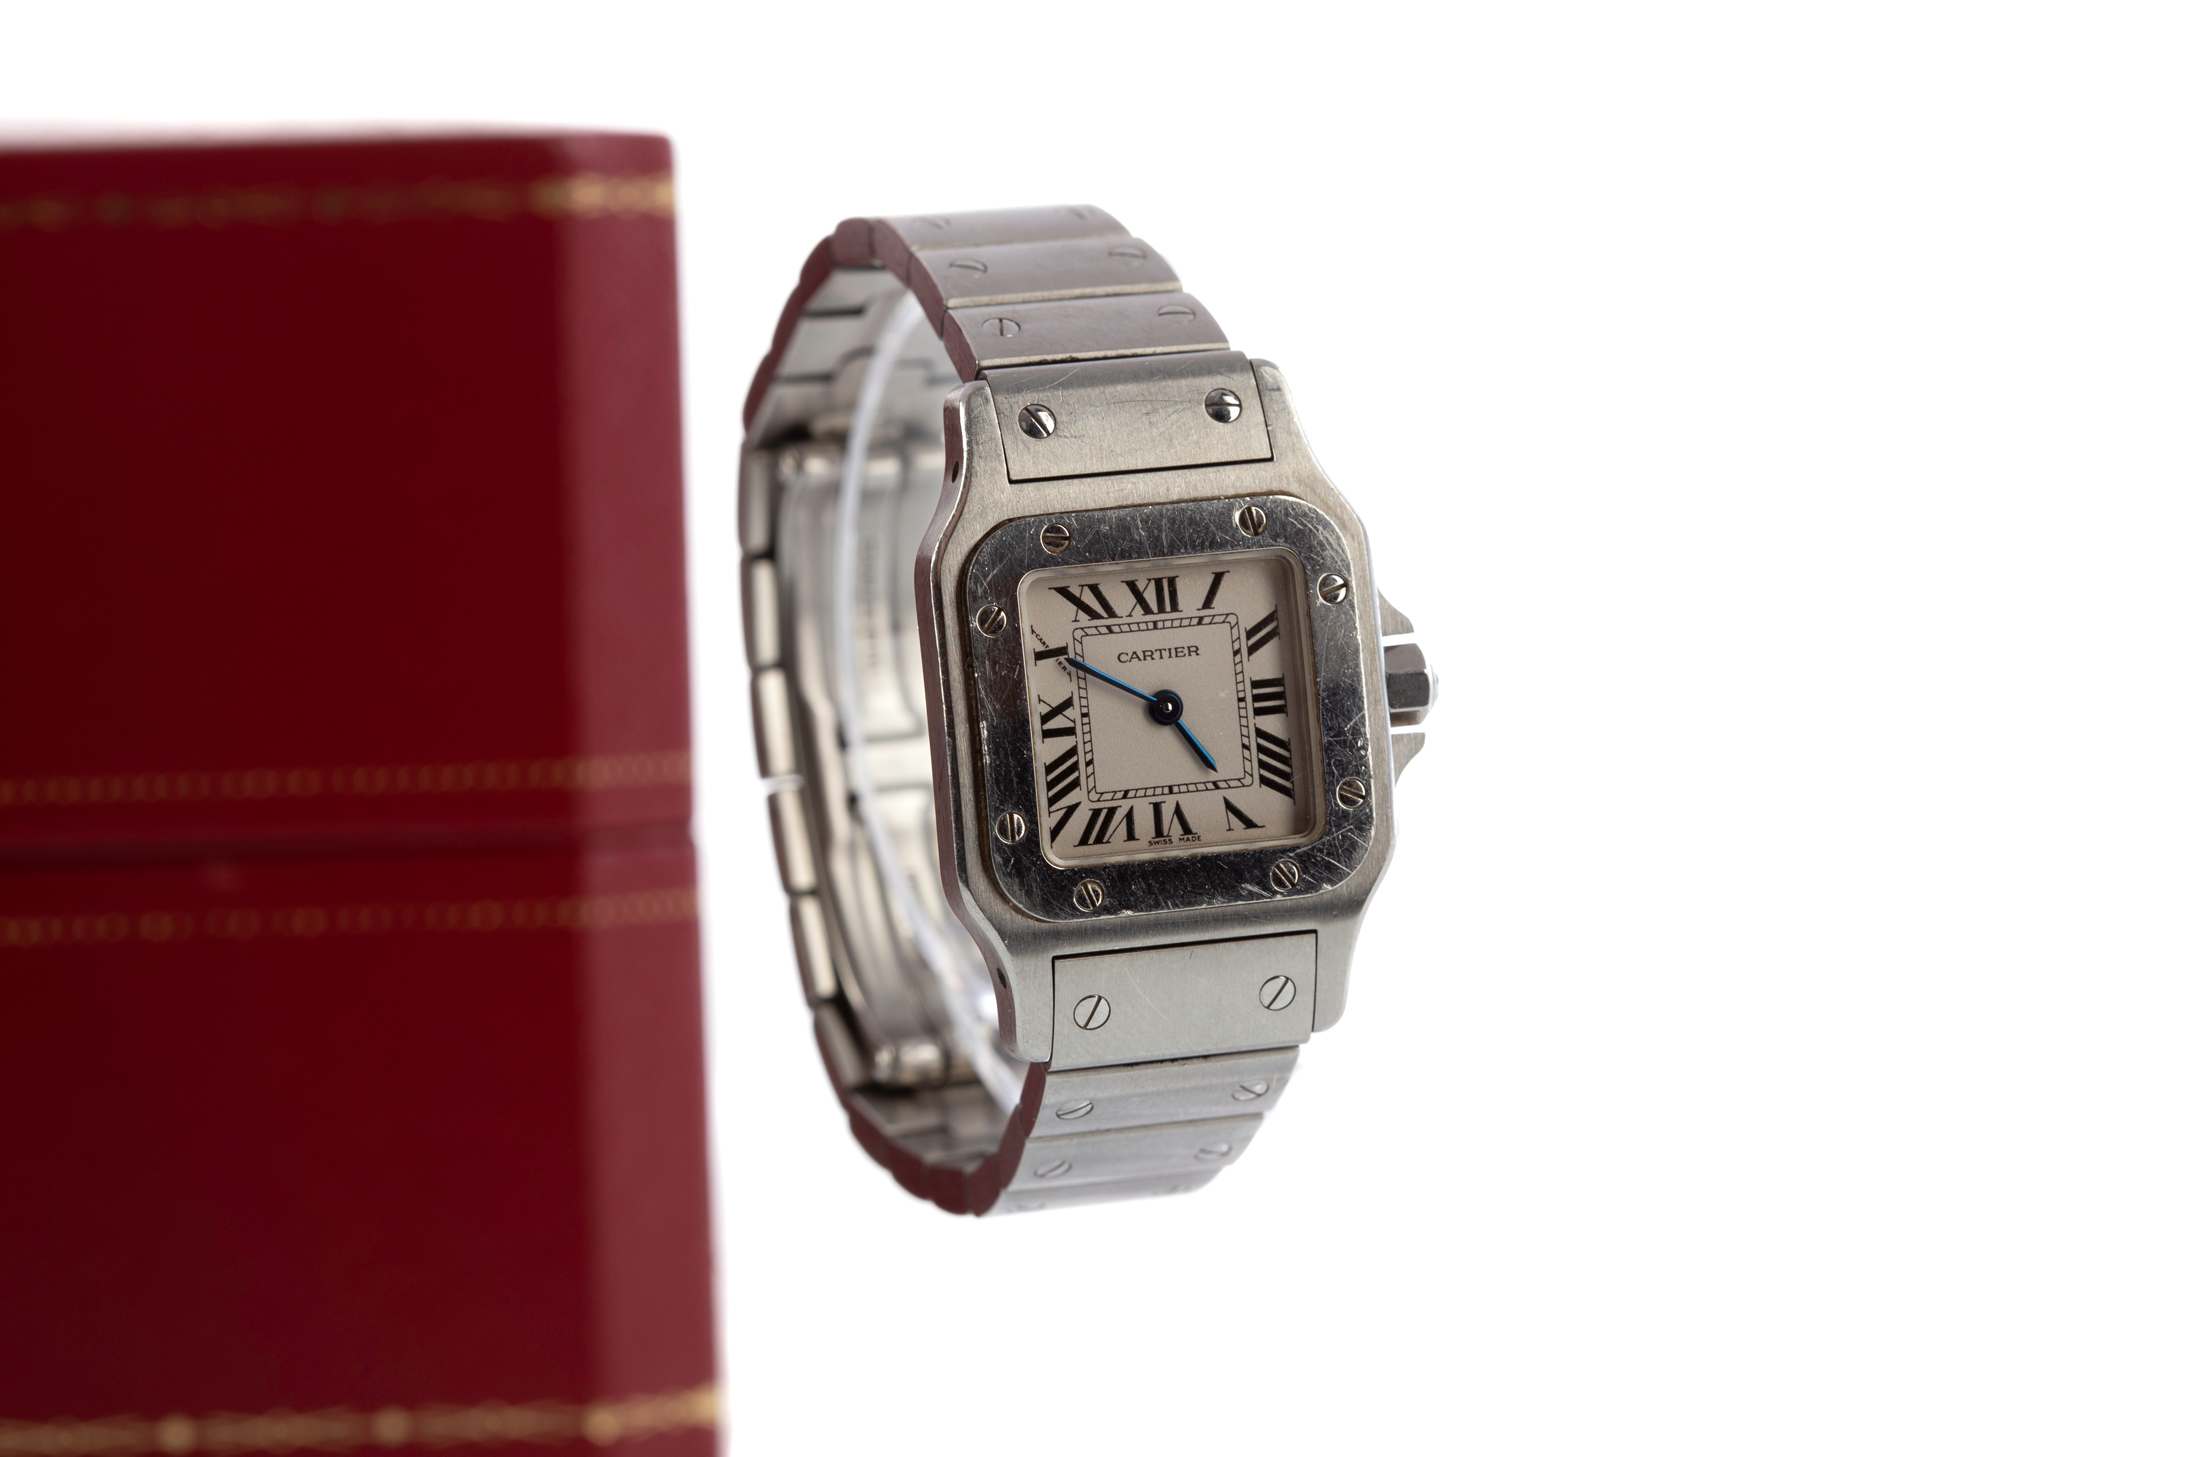 CARTIER SANTOS STAINLESS STEEL QUARTZ WRIST WATCH, the square white dial with Roman hour markers,